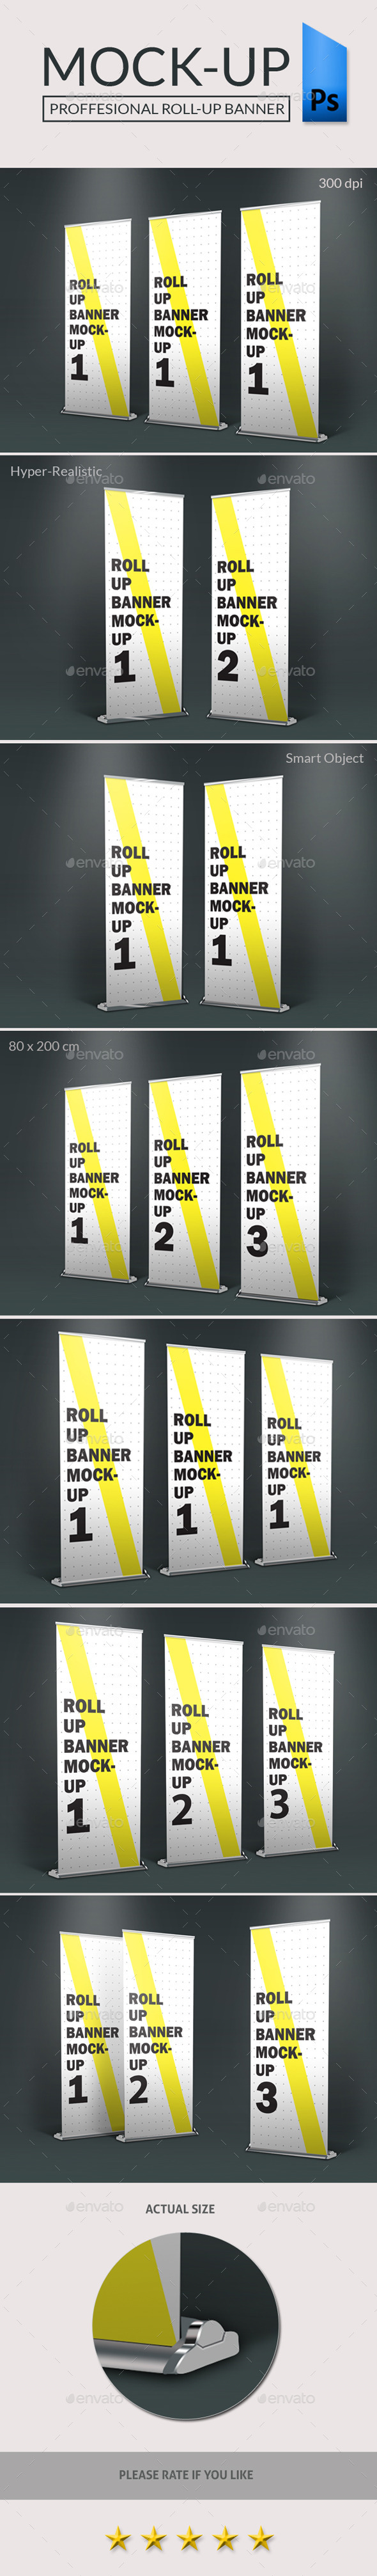 GraphicRiver Roll-Up Standing Banner Photorealistic-Mockup 9493797